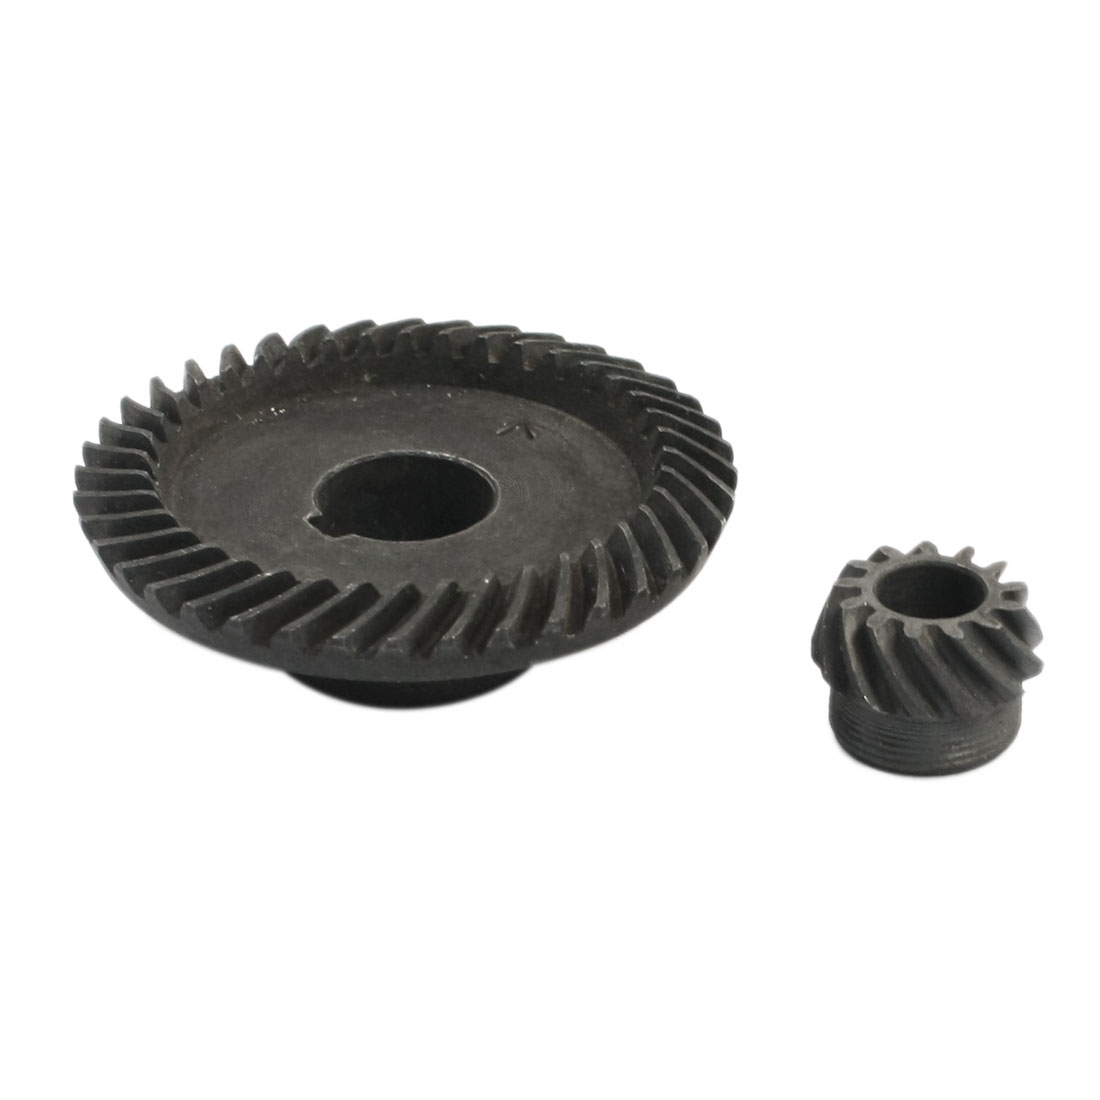 Power Tool Spiral Bevel Gear Set for Hitachi 150 Angle Grinder (Old Type)